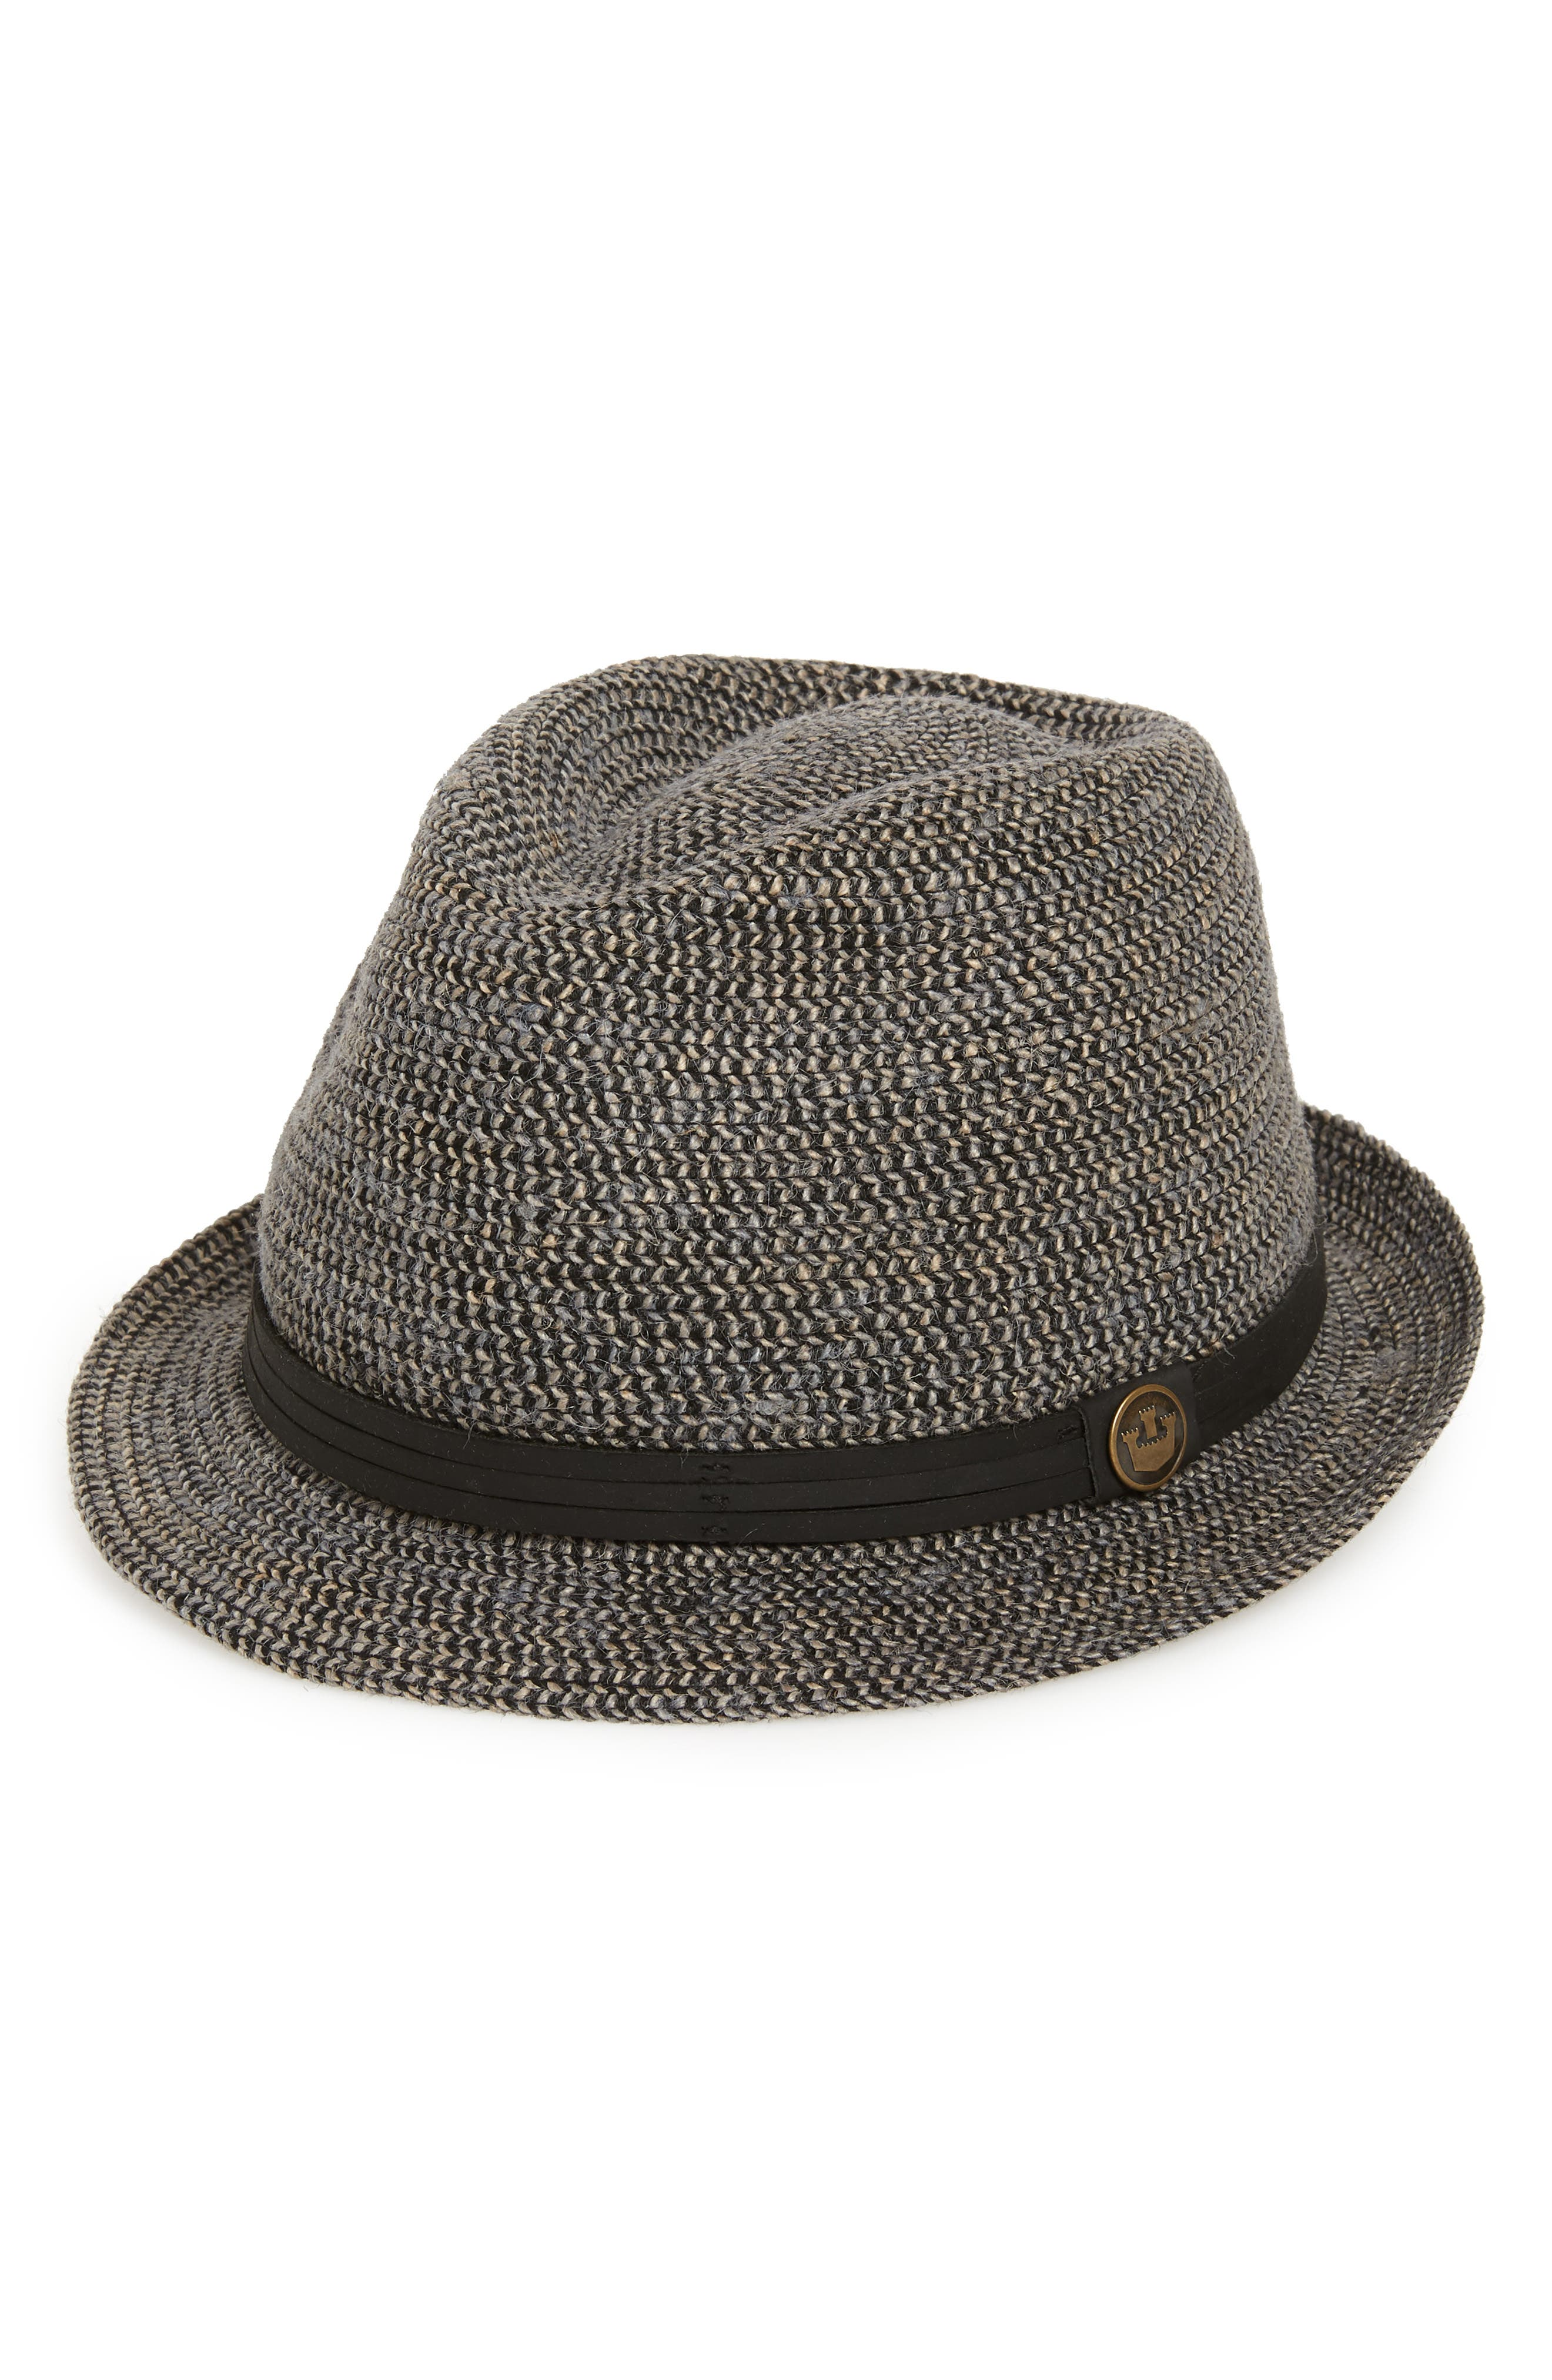 Laying Low Porkpie Hat,                         Main,                         color, 001